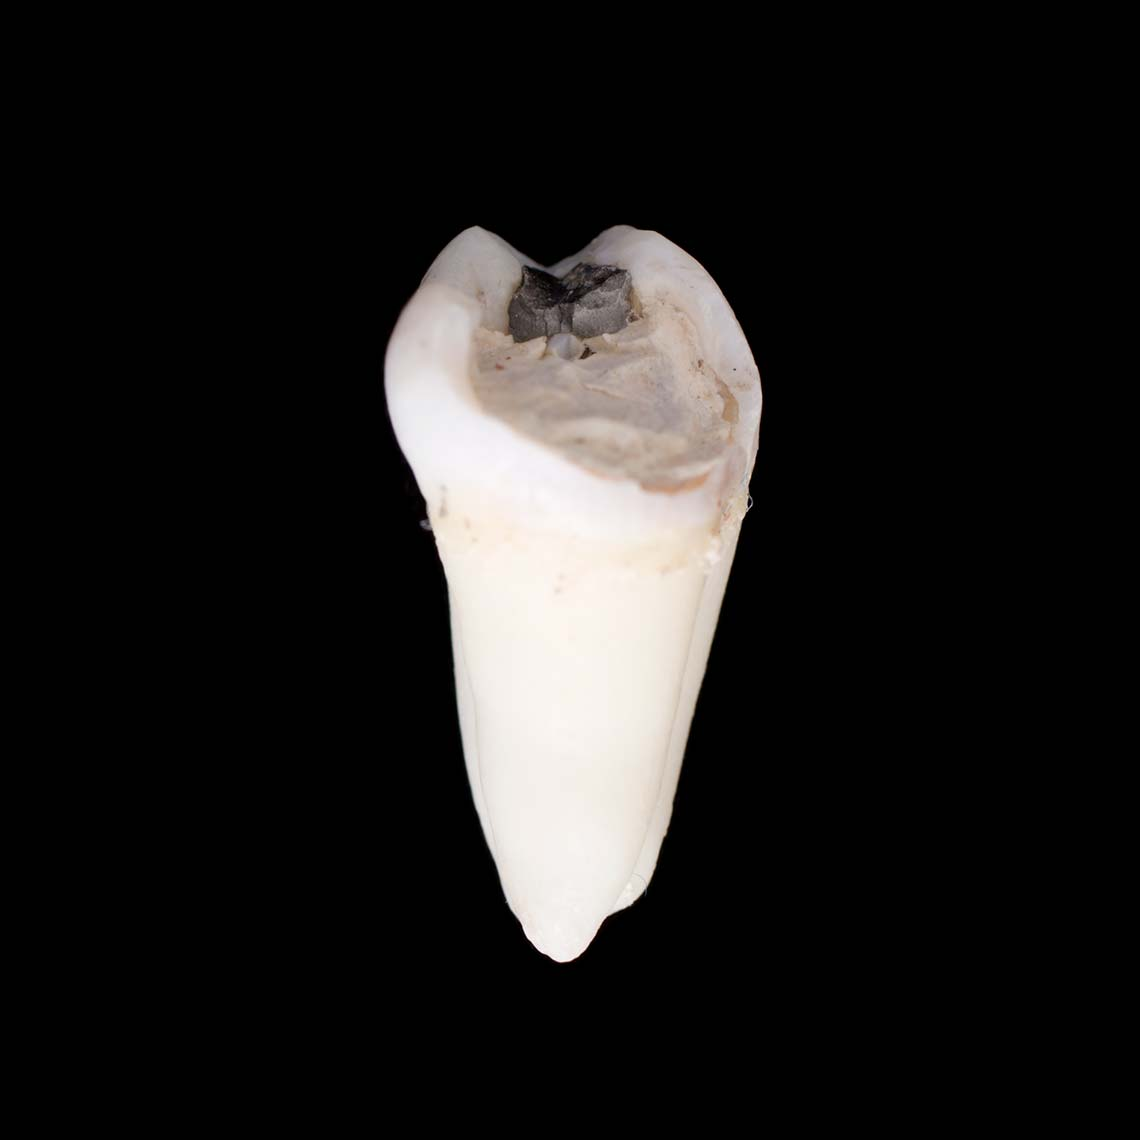 tooth_7422.jpg